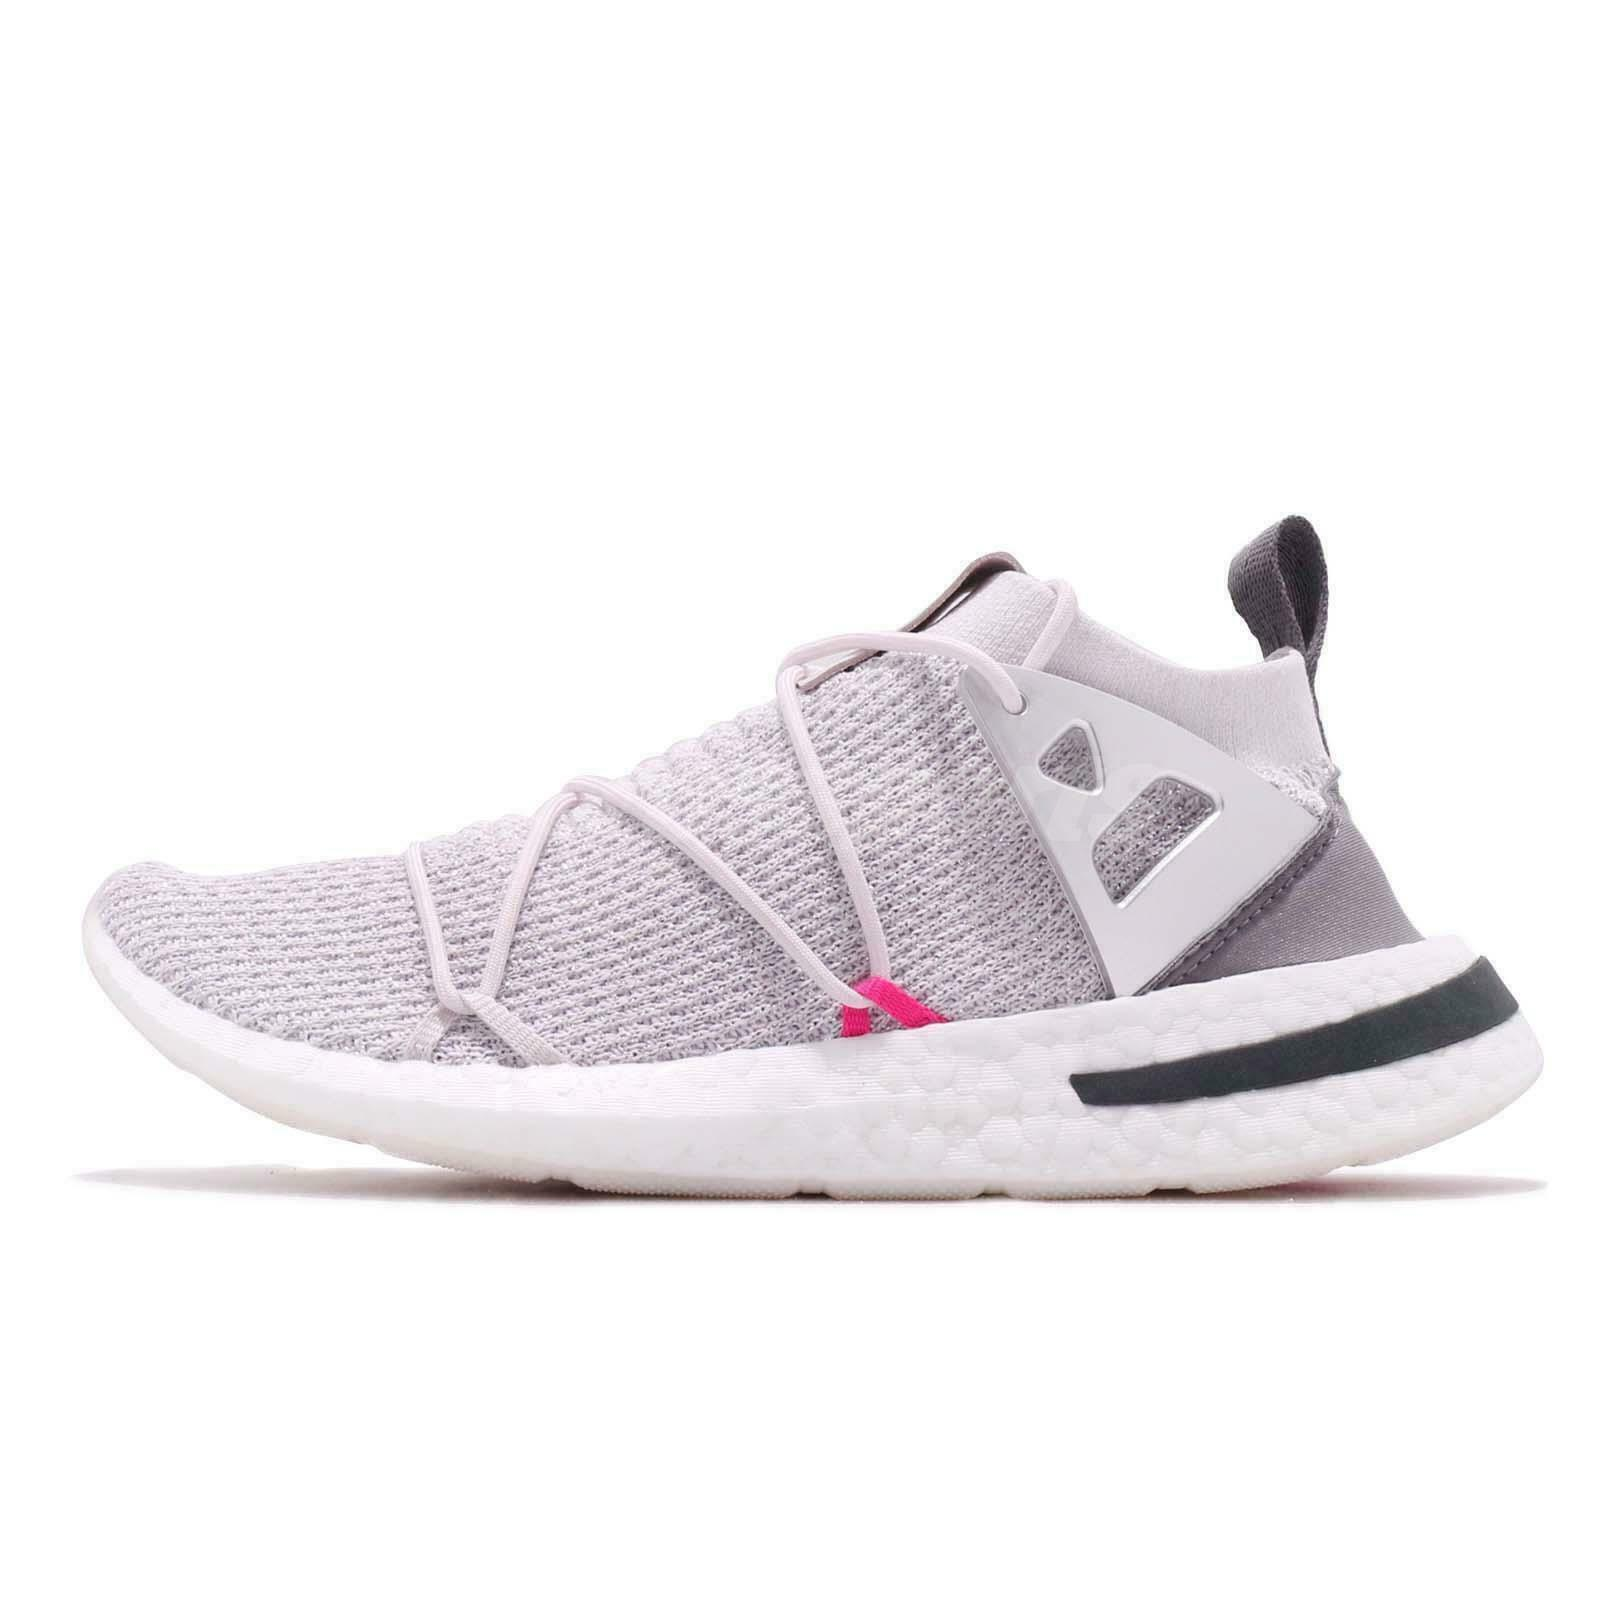 Adidas Arkyn  Primeknit  Women's Running/Trainer/Pink/Mesh(D96760)Size:US 9.5 image 3